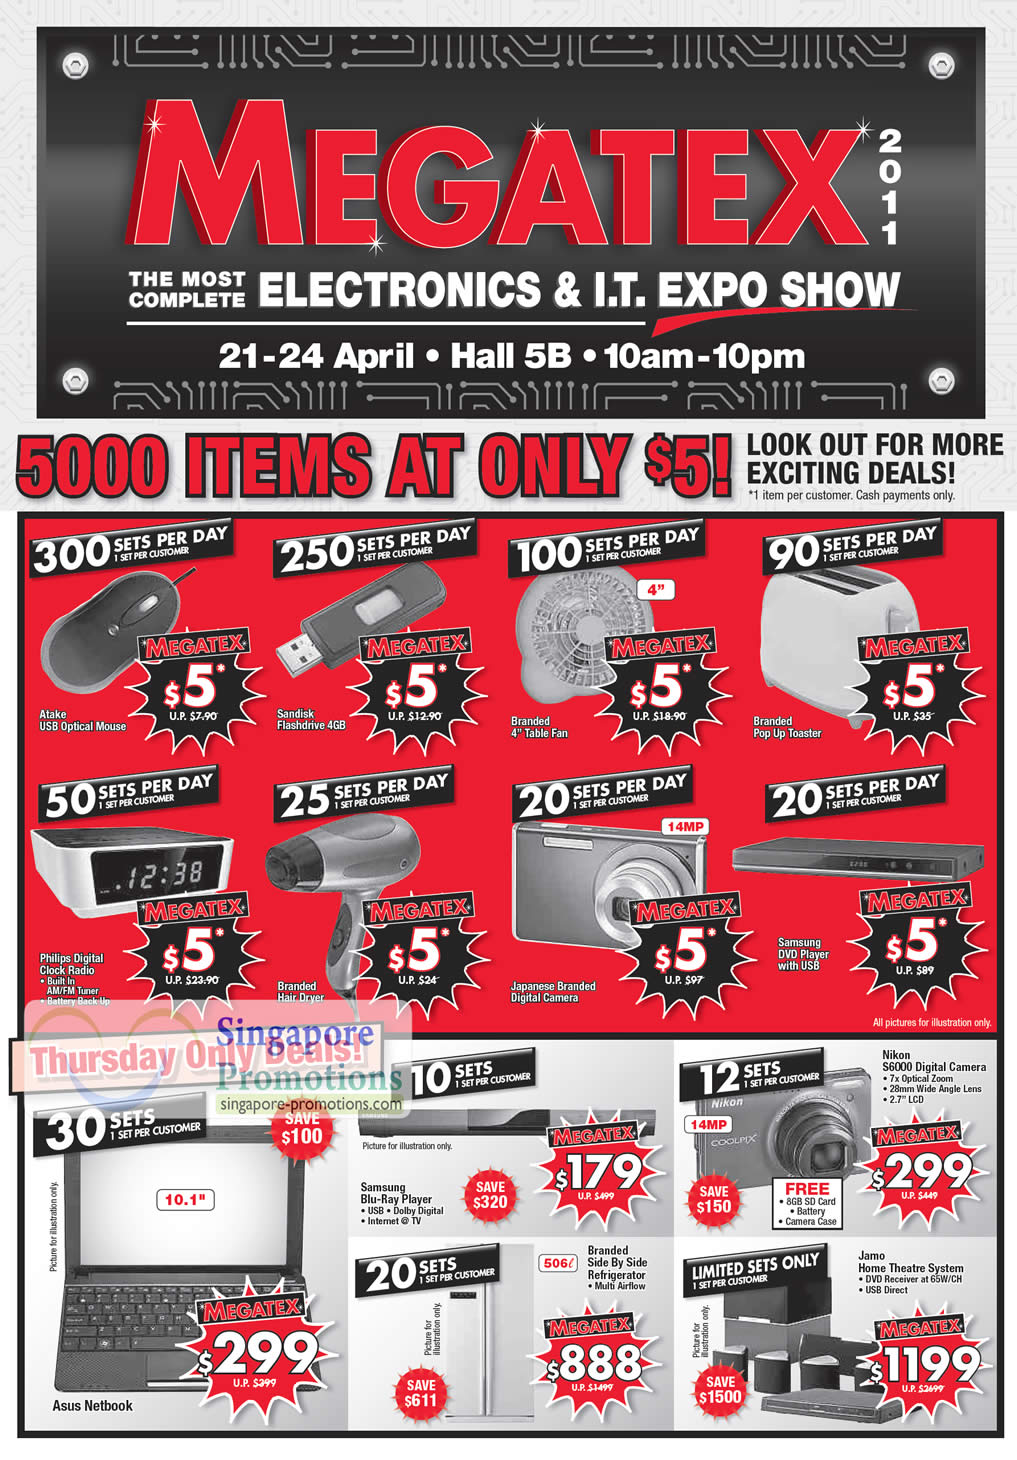 21 Apr Daily Limited Special Deals, Sandisk Flashdrive, Digital Radio, Toaster, DVD Player, Nikon S6000 Digital camera, Fridge, Asus Netbook